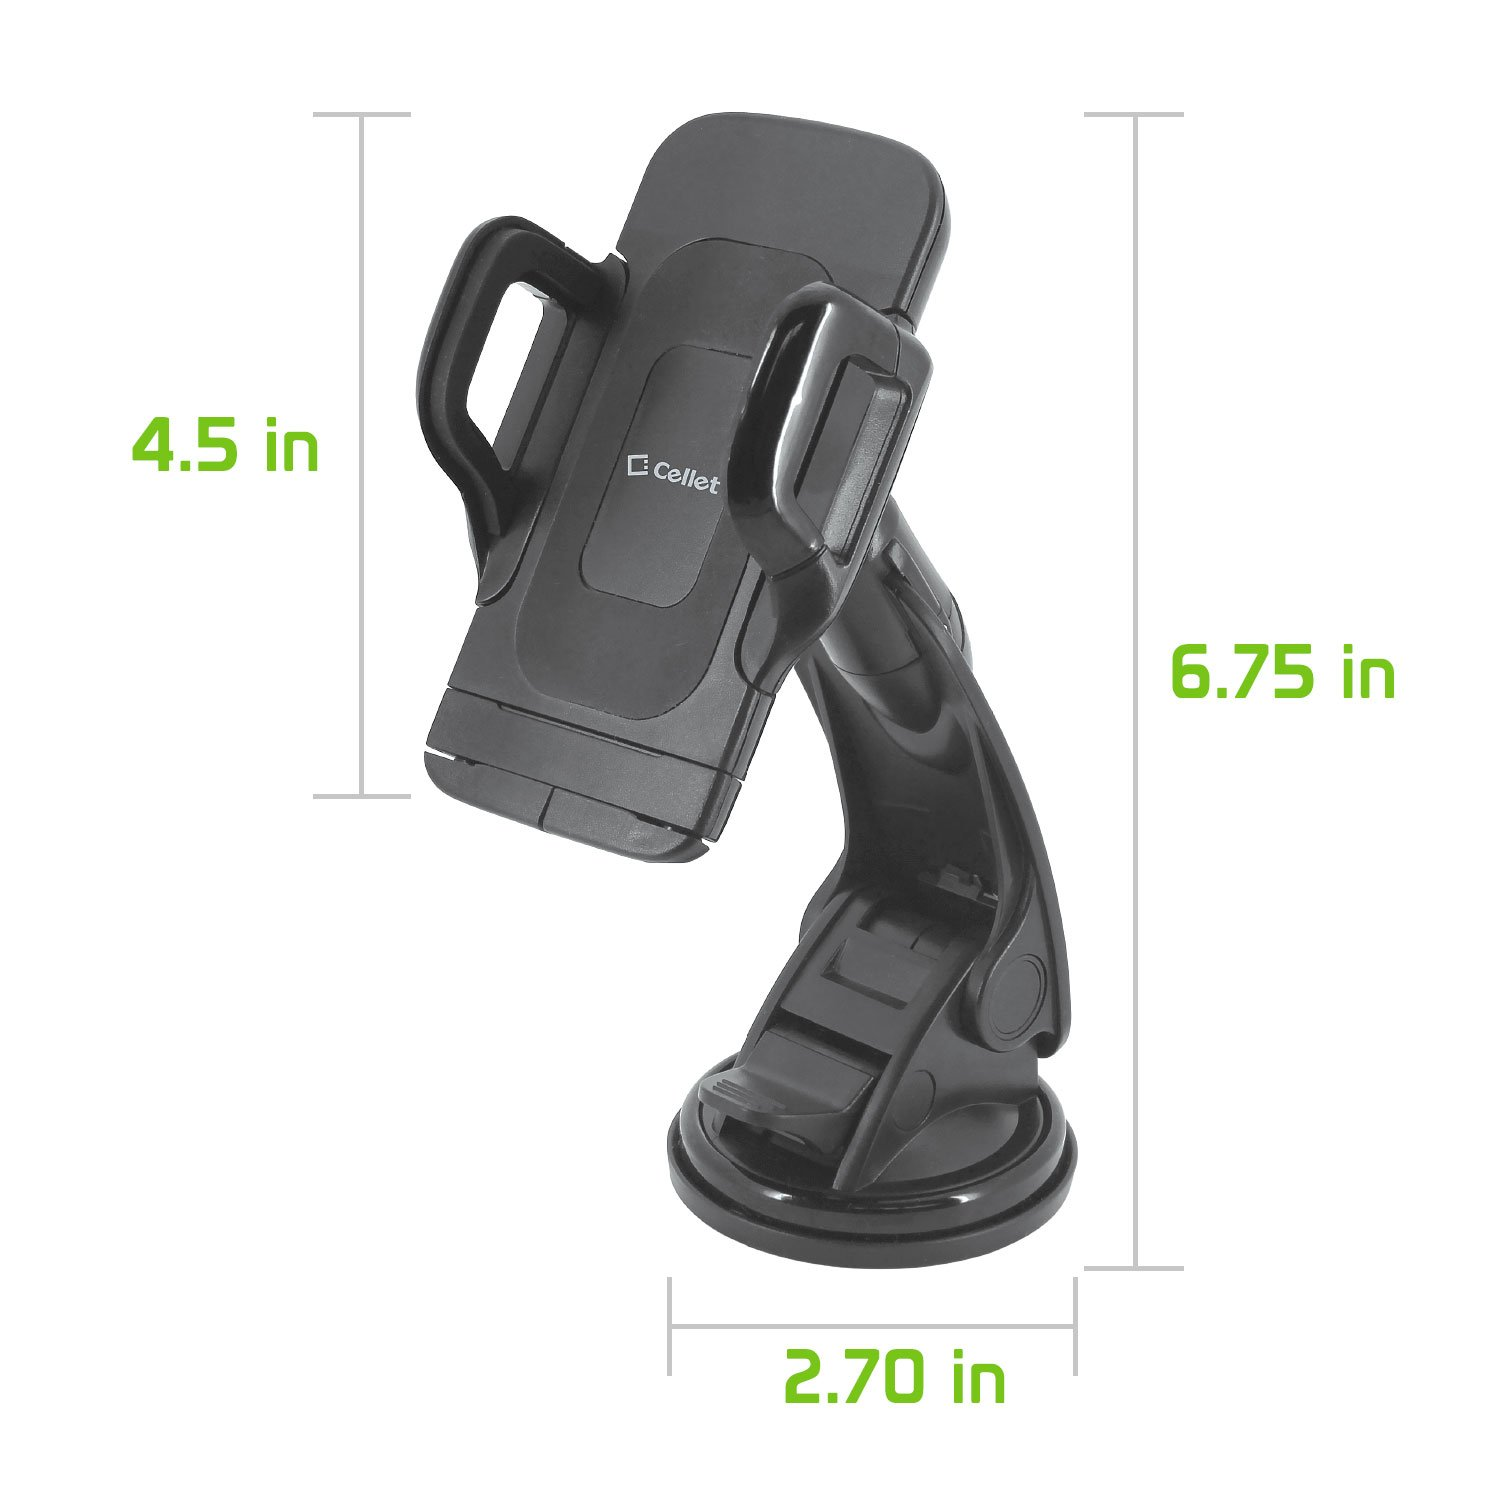 Car Phone Mount,Washable Strong Sticky Gel Pad with One-Touch Design Windshield or Dashboard Car Phone Holder for iPhone X//8//8Plus//7//7Plus//6s//6Plus Galaxy Note 8 Galaxy S8//S8 Plus